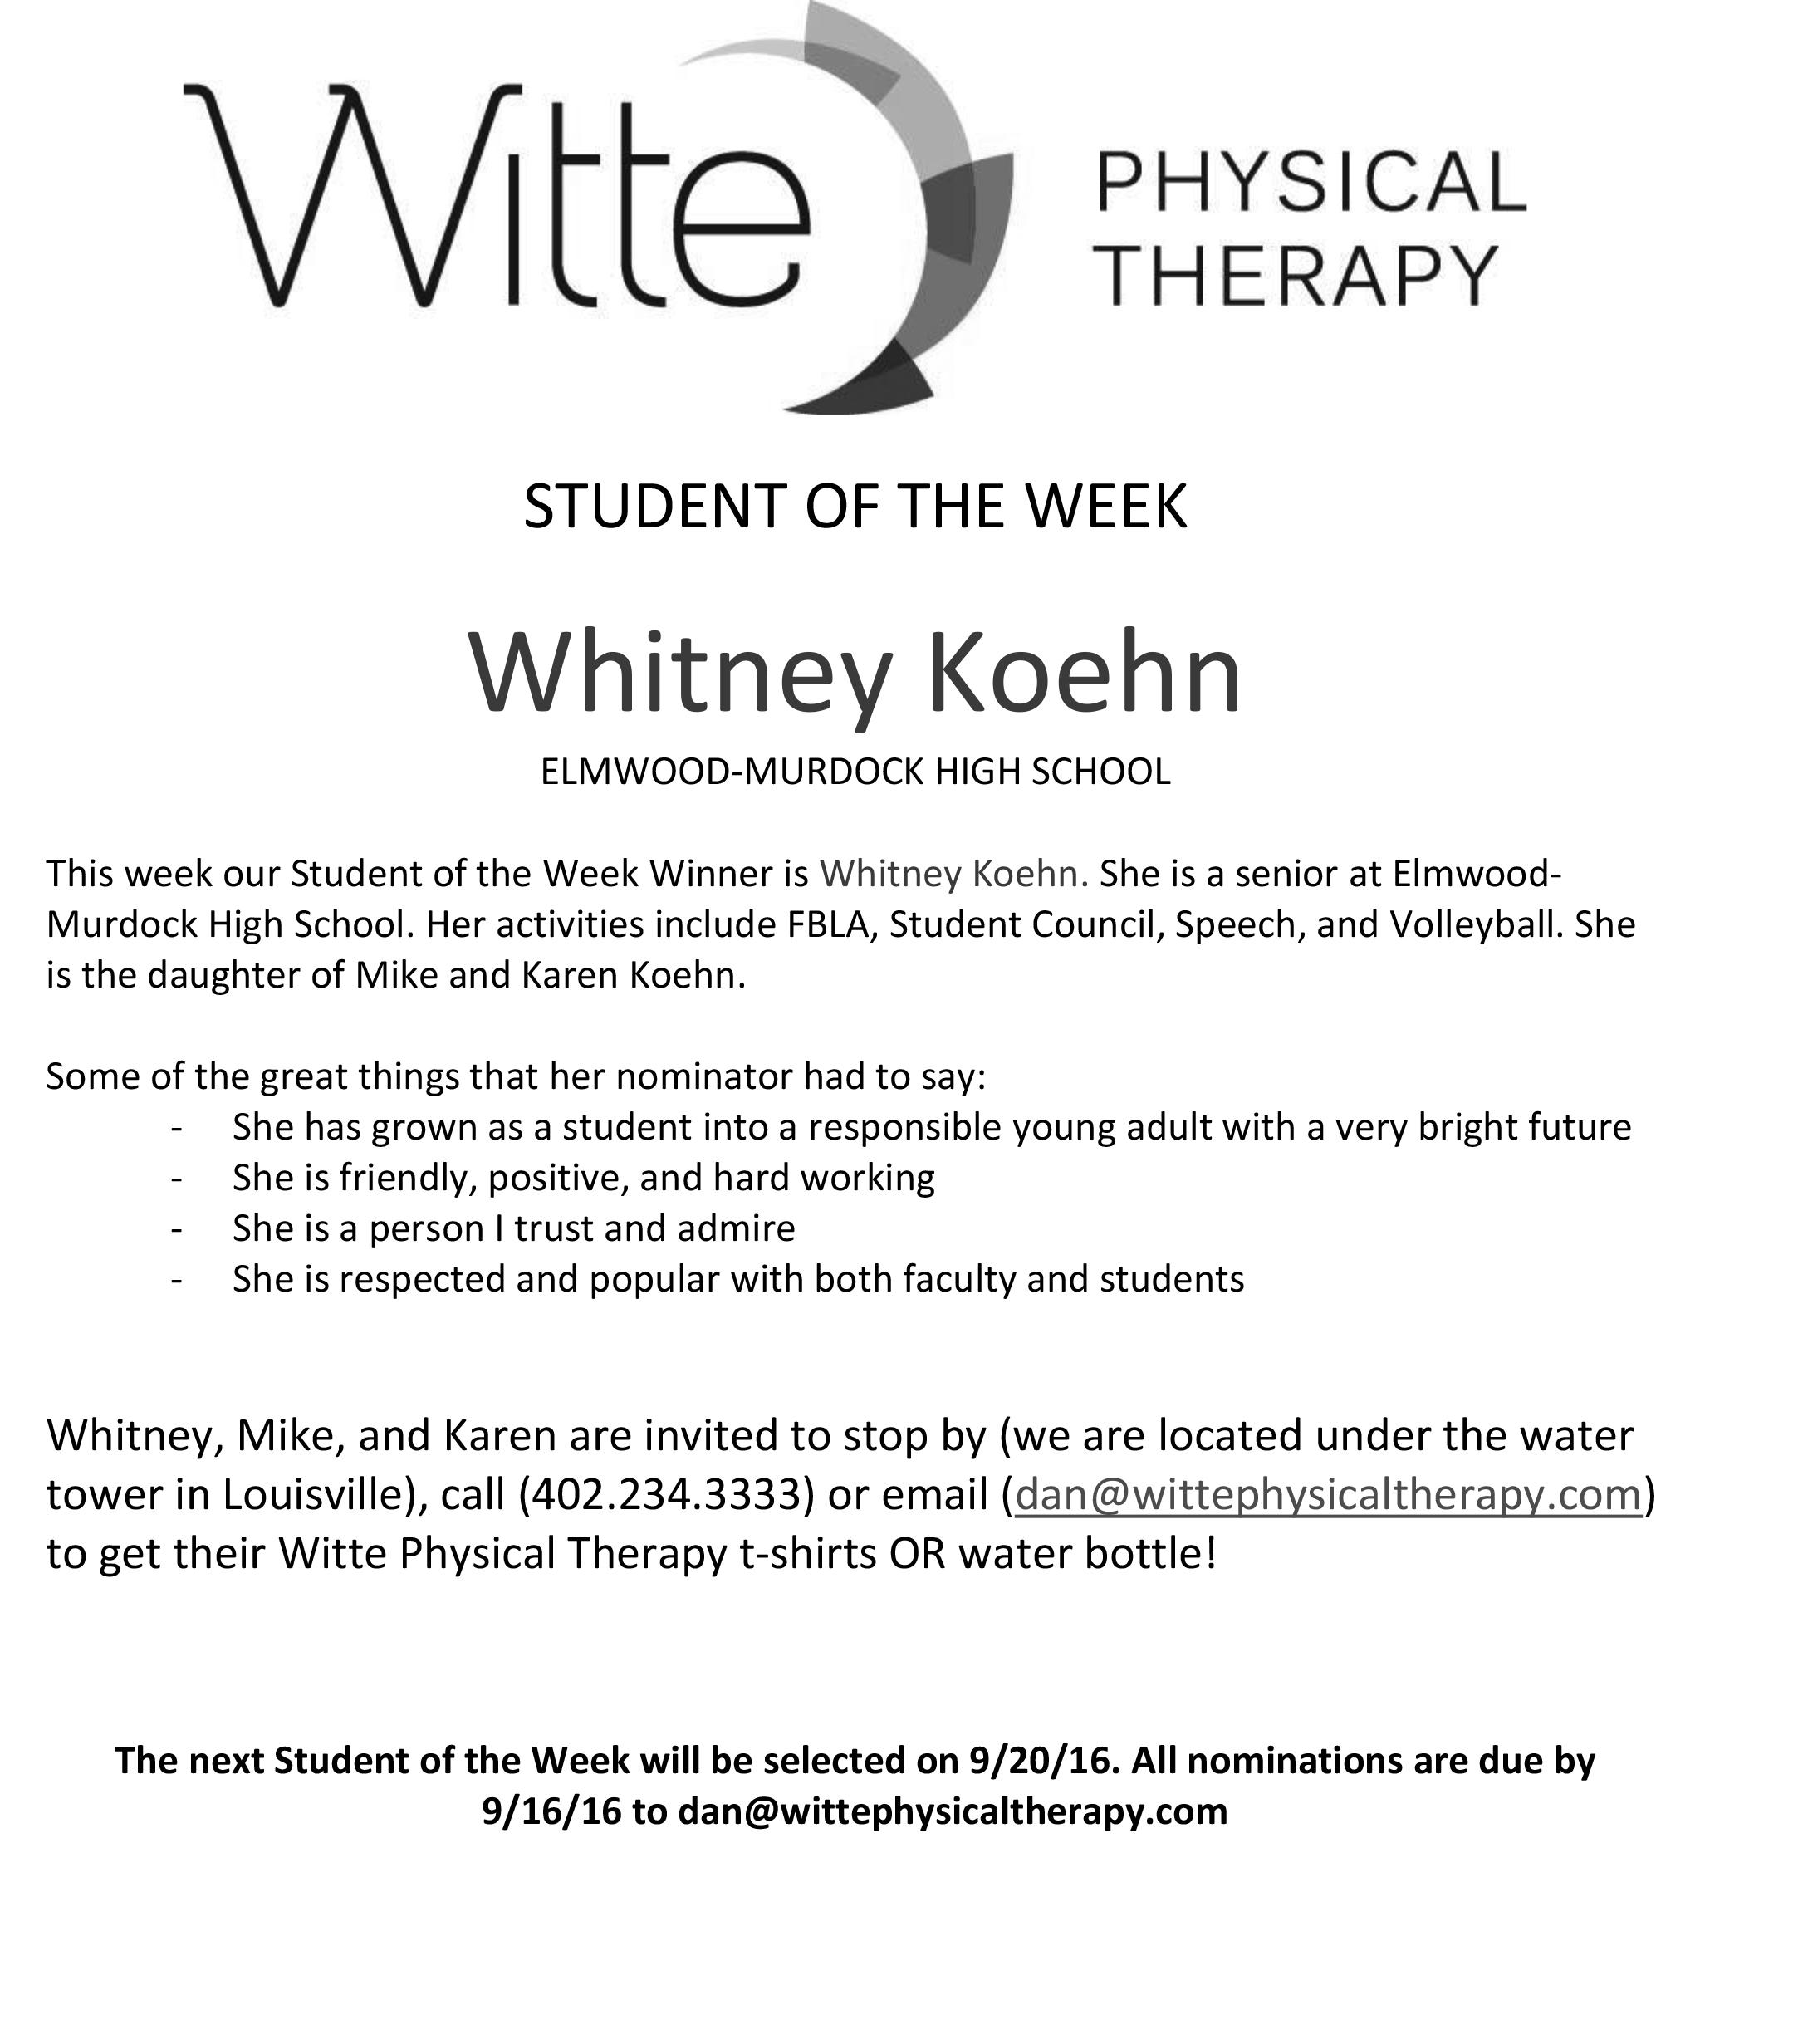 Student of the Week Selection